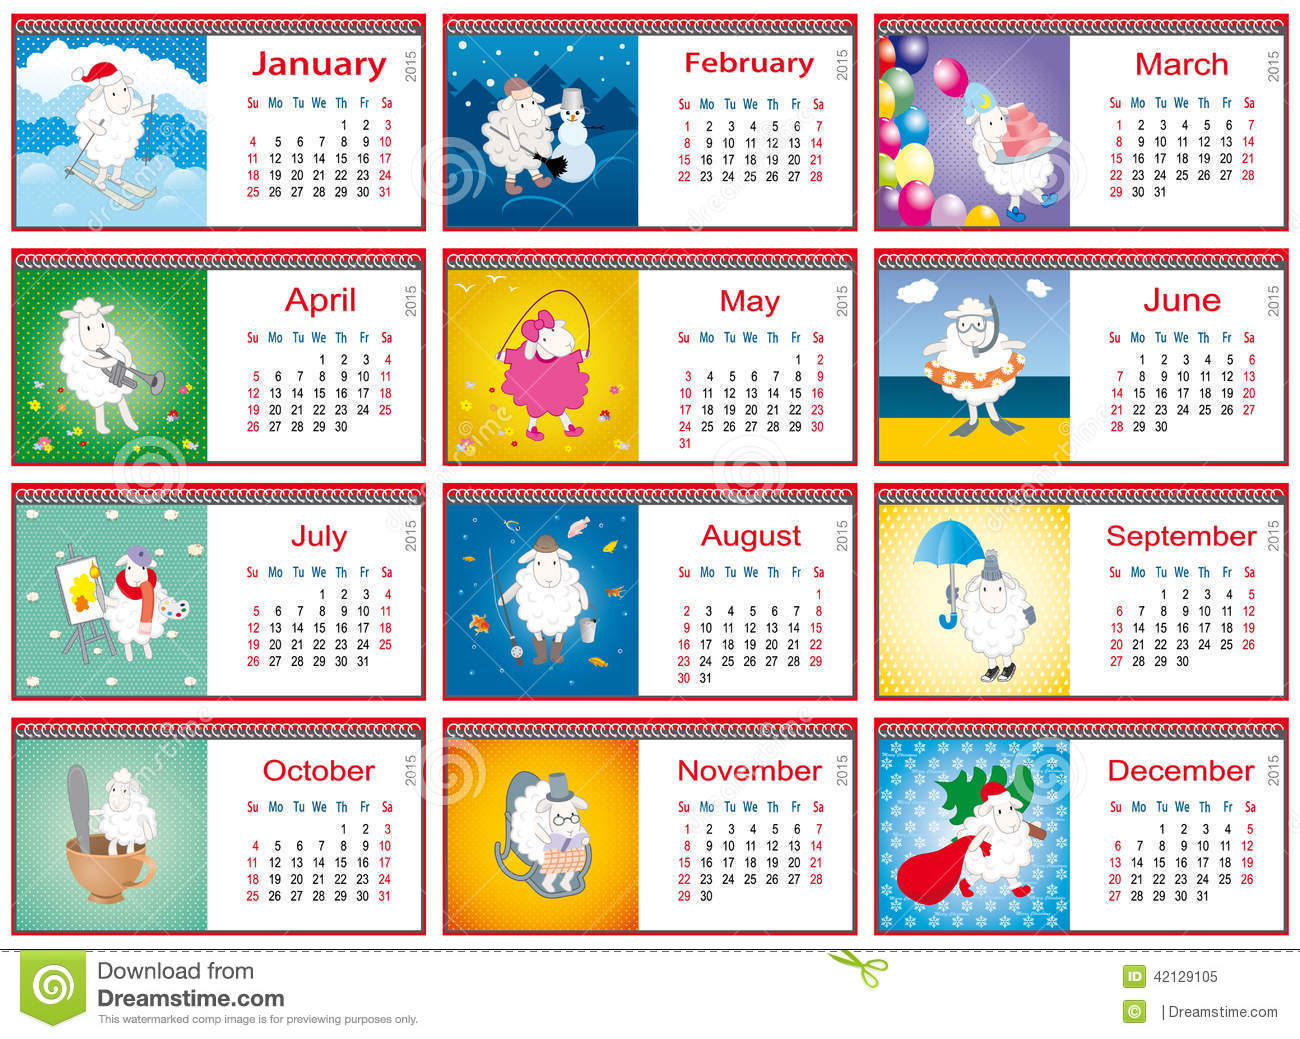 Calendar Photo Ideas For Each Month : Calendars for each month in with active sheep stock